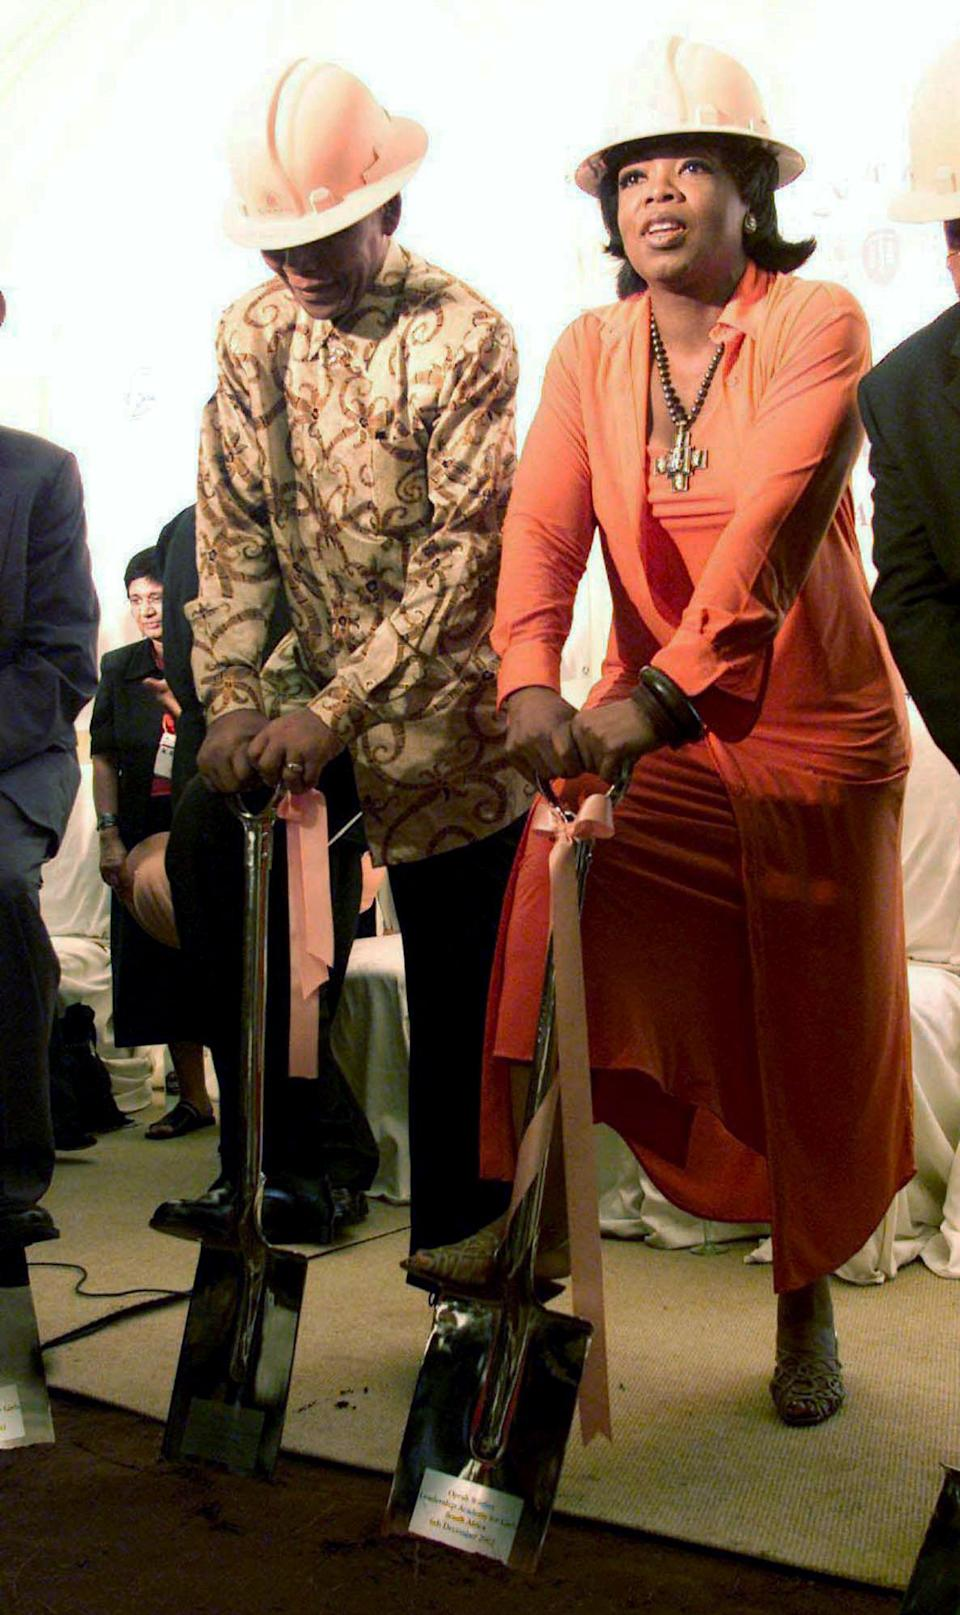 FILE - In this Dec. 6, 2002 file photo, former South African President Nelson Mandela, left, and American talk show host Oprah Winfrey participate in a ground breaking ceremony for the Oprah Winfrey Leadership Academy for Girls in Meyerton, South Africa. Heroic in his deeds, graceful in his manner, sainted in his image, Nelson Mandela long served as both cause and muse in the entertainment community. From the 1960s, when he was a political prisoner and South Africa was under the laws of apartheid, right up to recent times, when the racist laws of the land had fallen and he was among the world's most admired people, Mandela inspired concerts, songs, poems, fiction and movies. (AP Photo/Themba Hadebe, File)